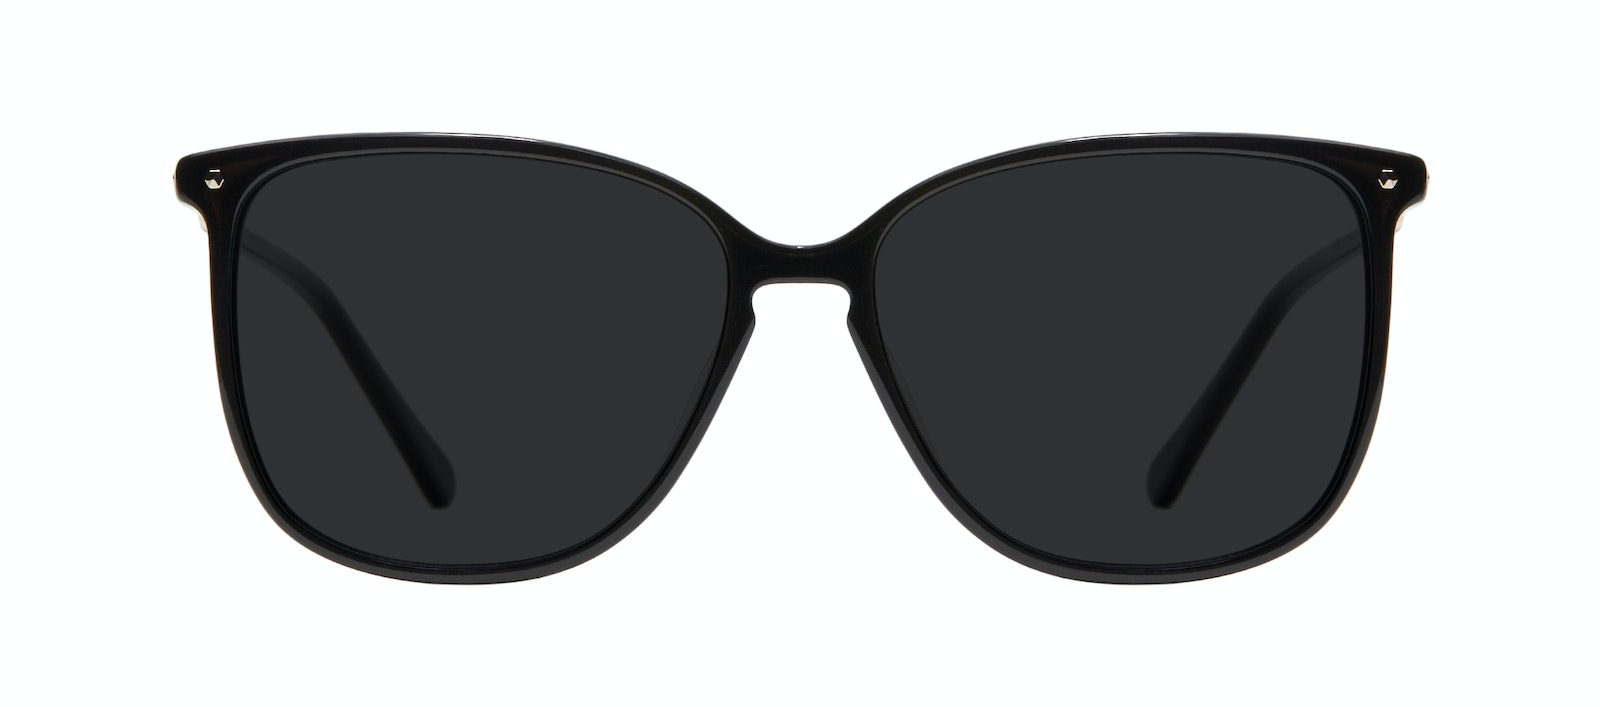 Affordable Fashion Glasses Square Sunglasses Women Sonia Pitch Black Front